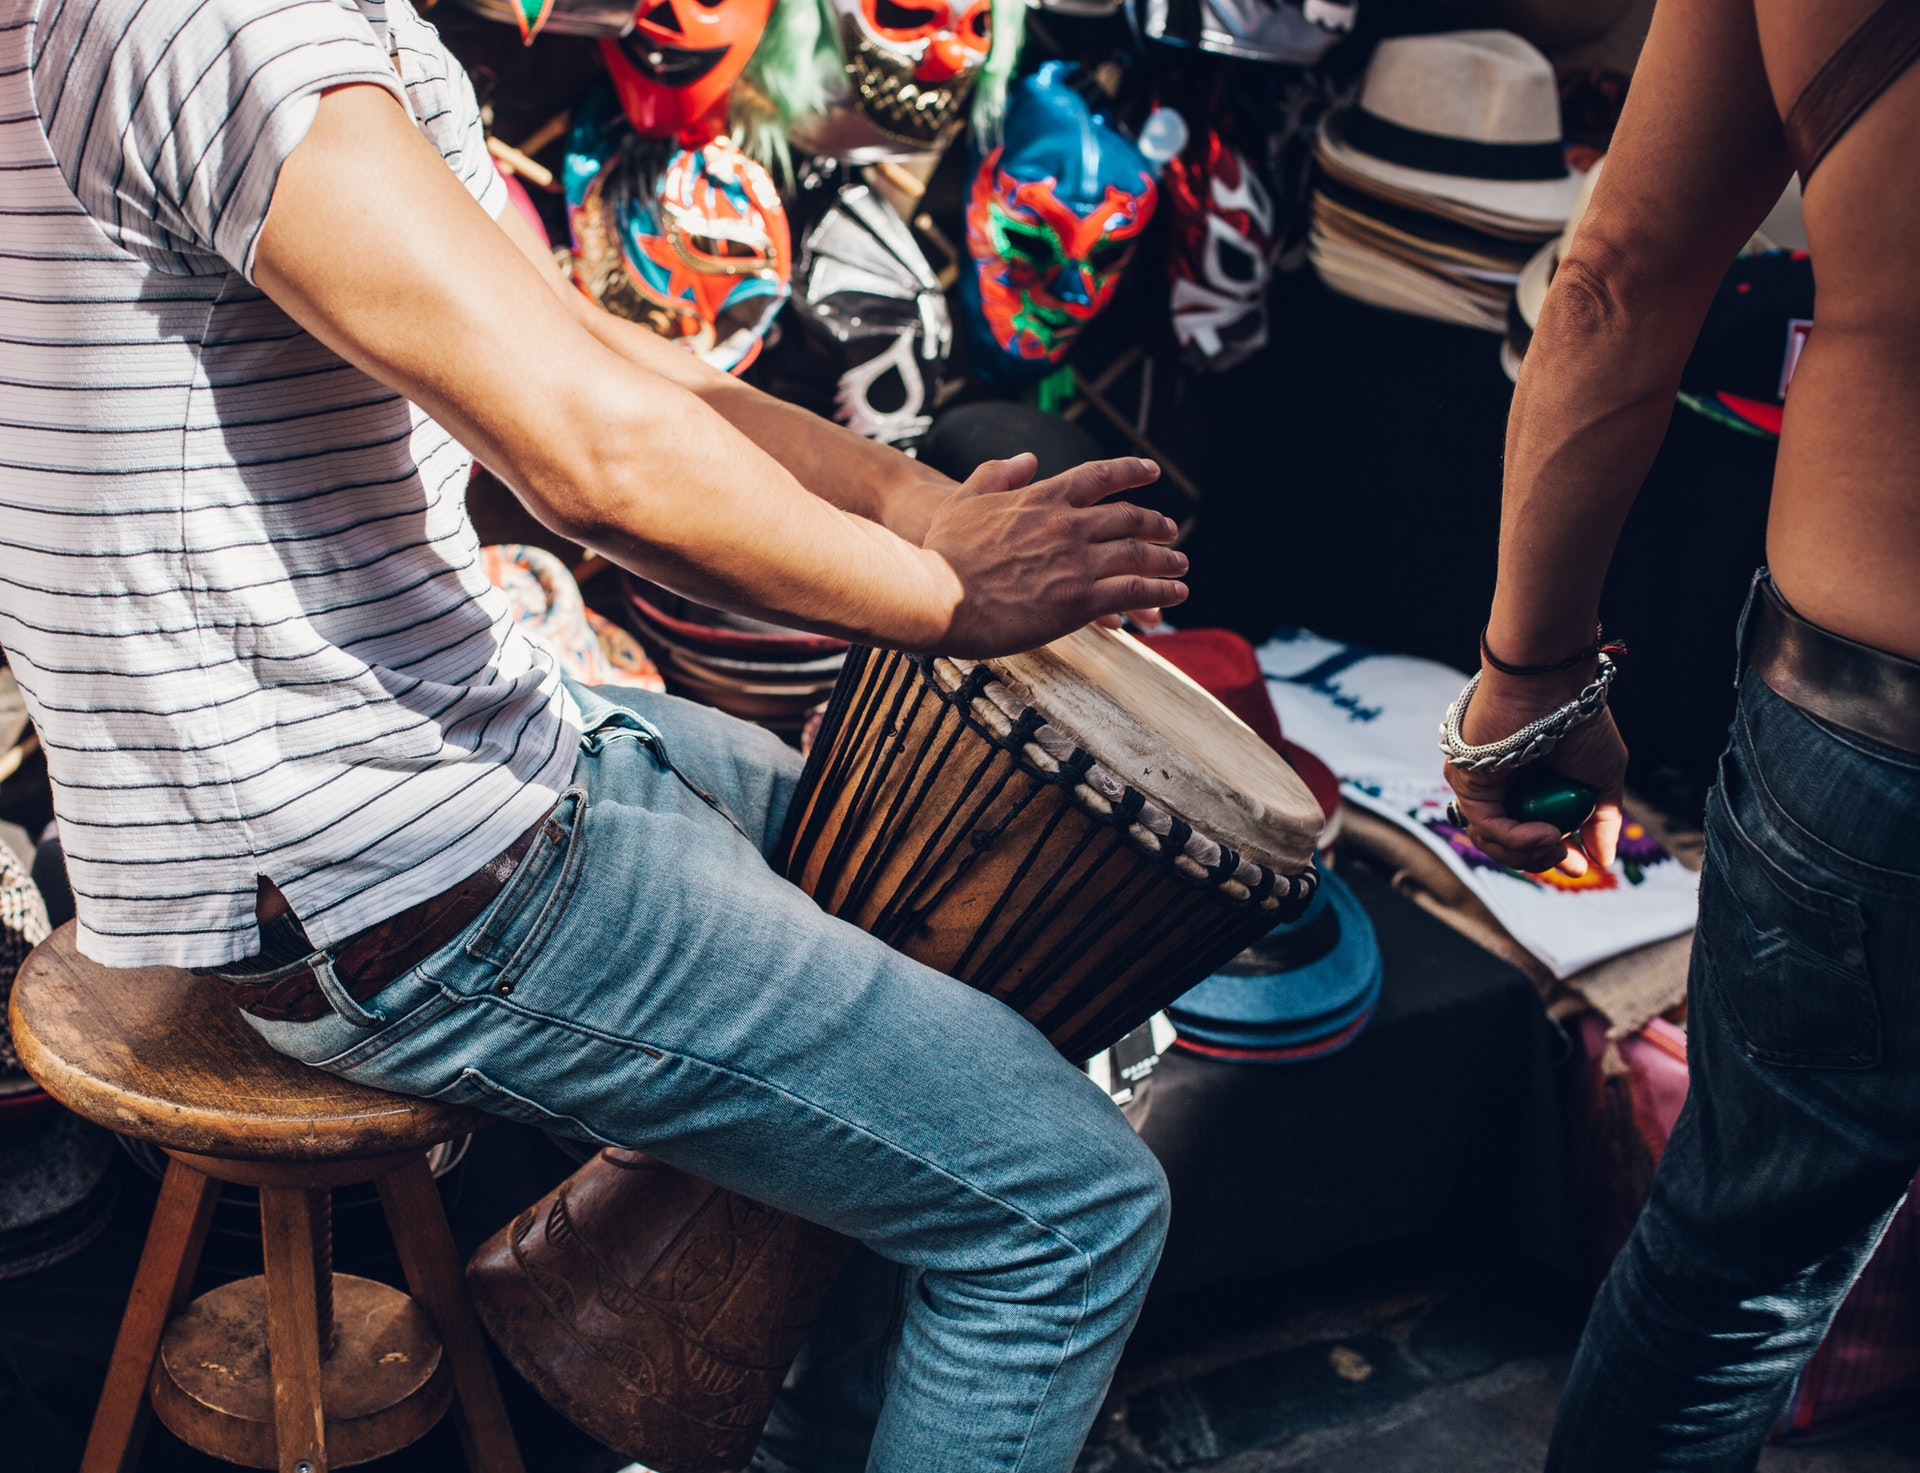 The Healing Power of Drum Song in Recovery - Thrive Global